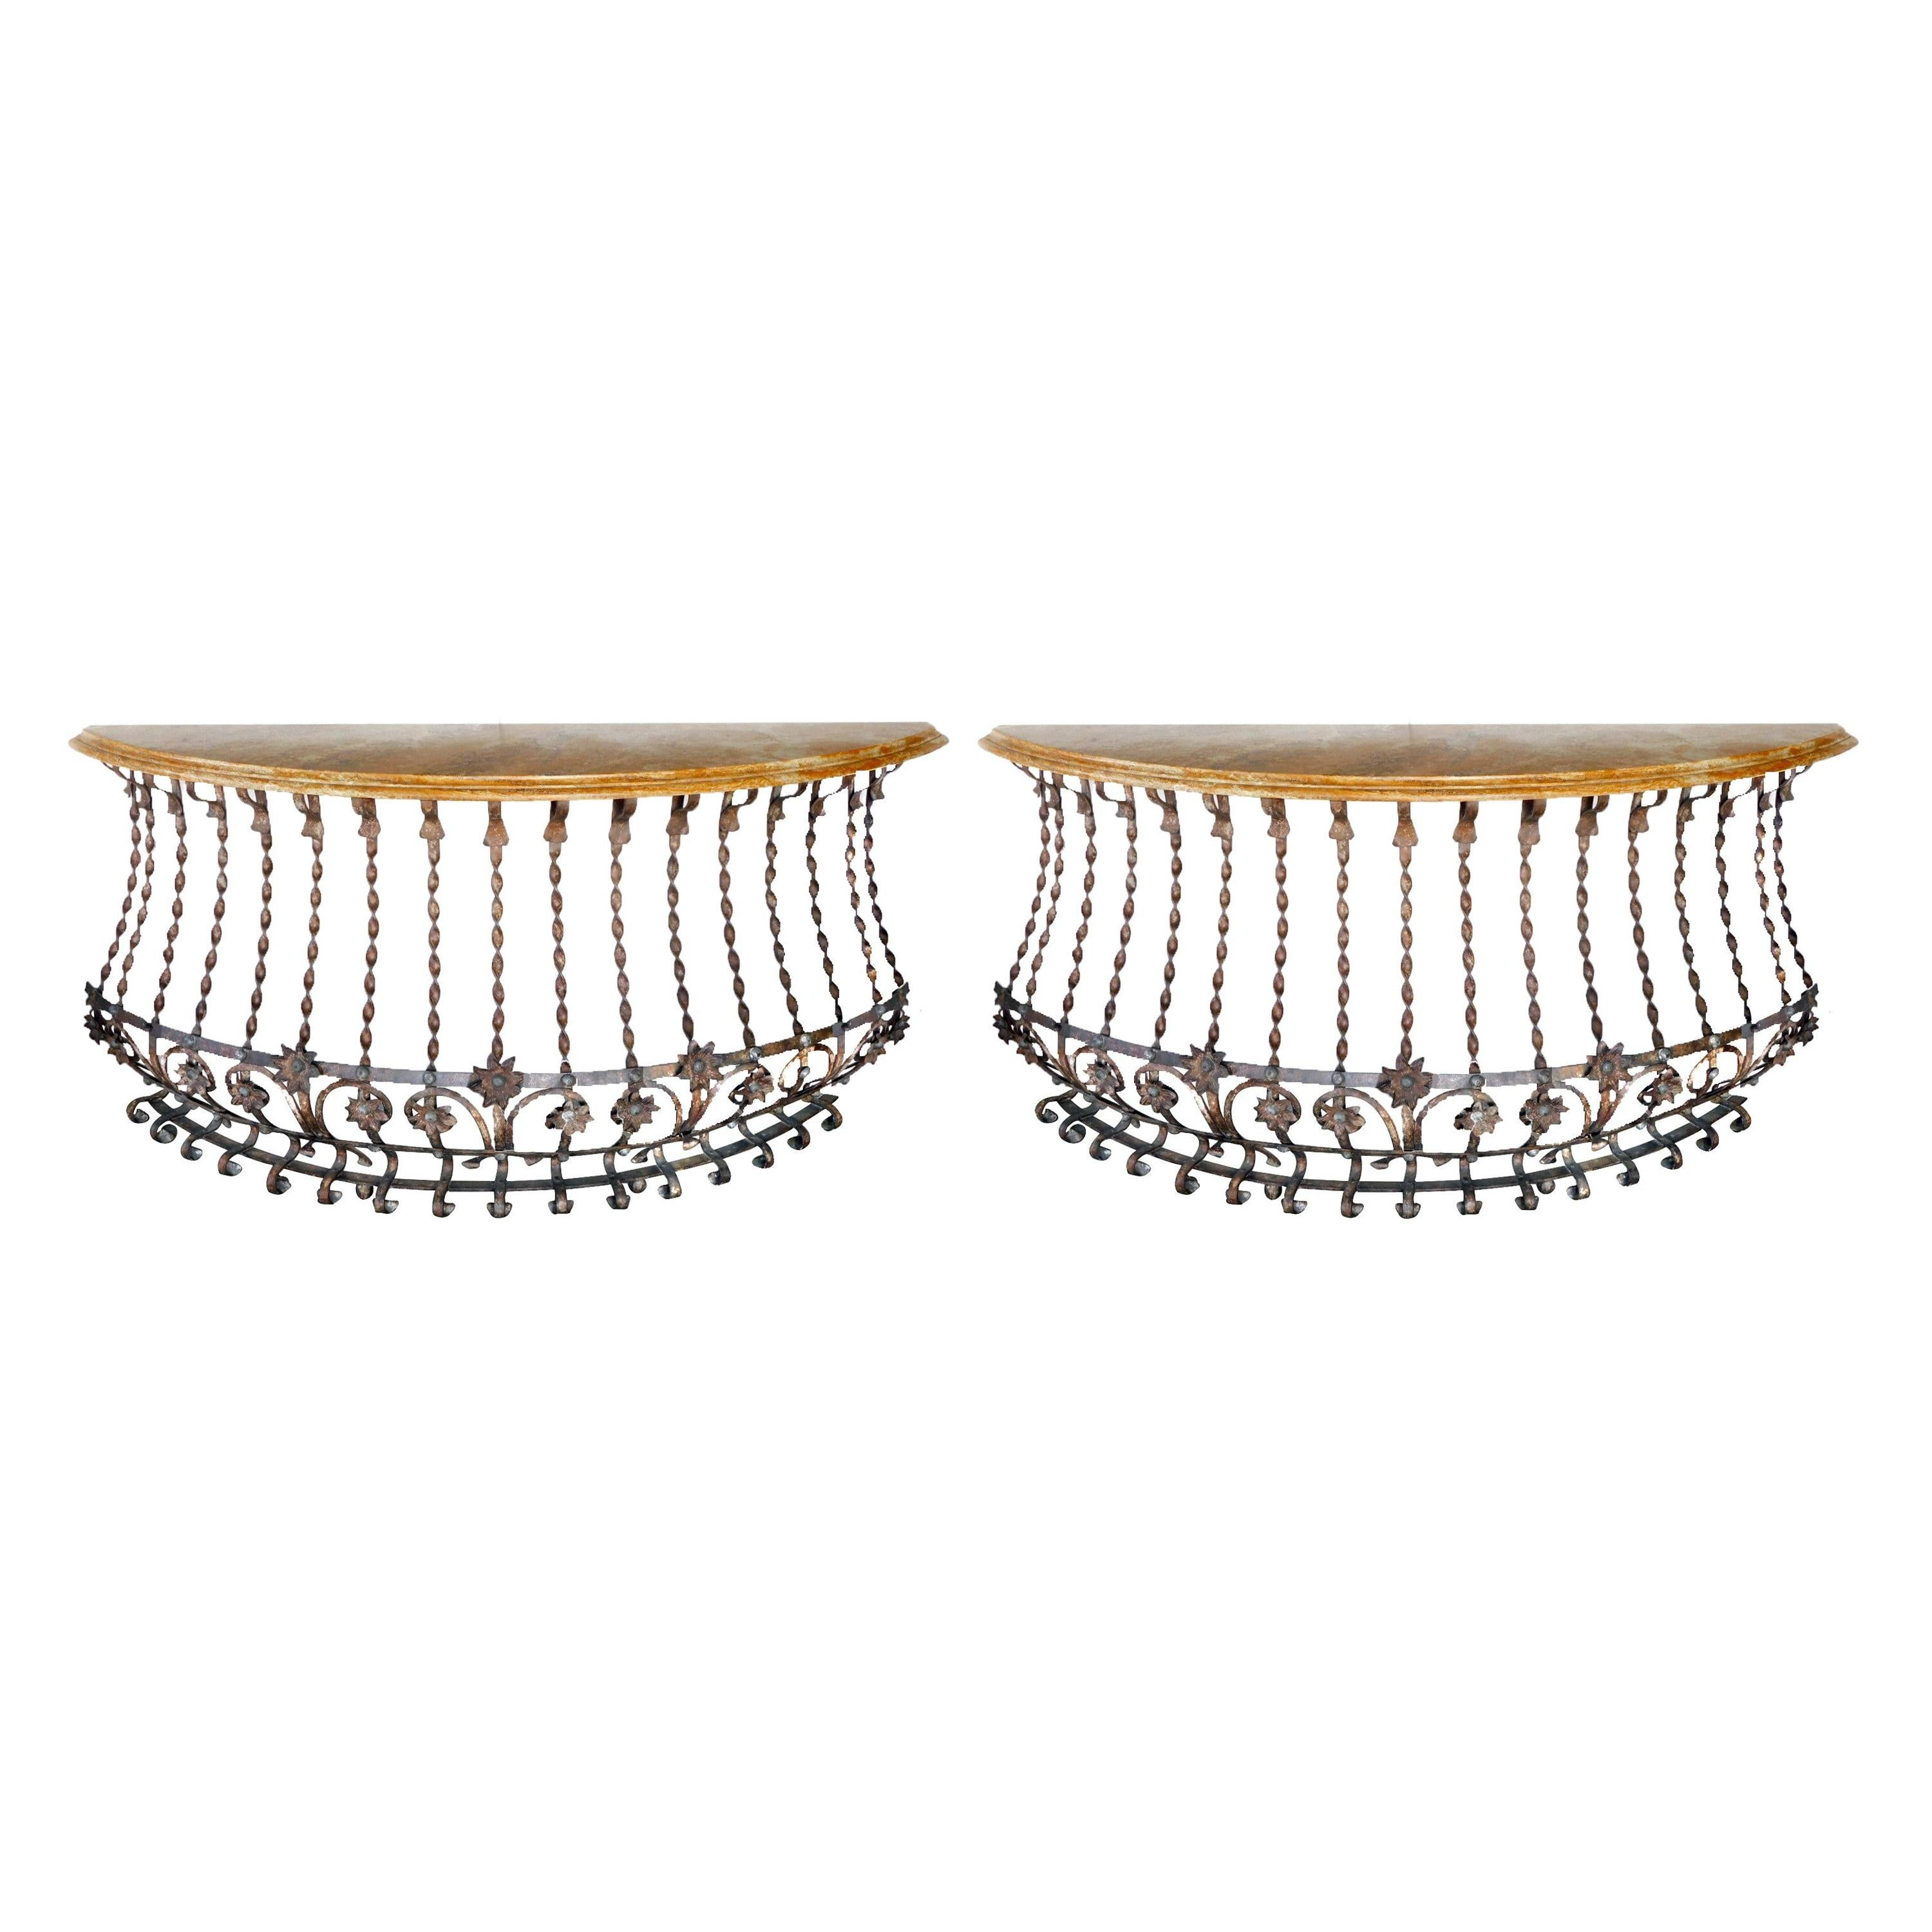 Pair of Italian Custom Forged-Iron Demilune Console Tables with Ochre Marble Top